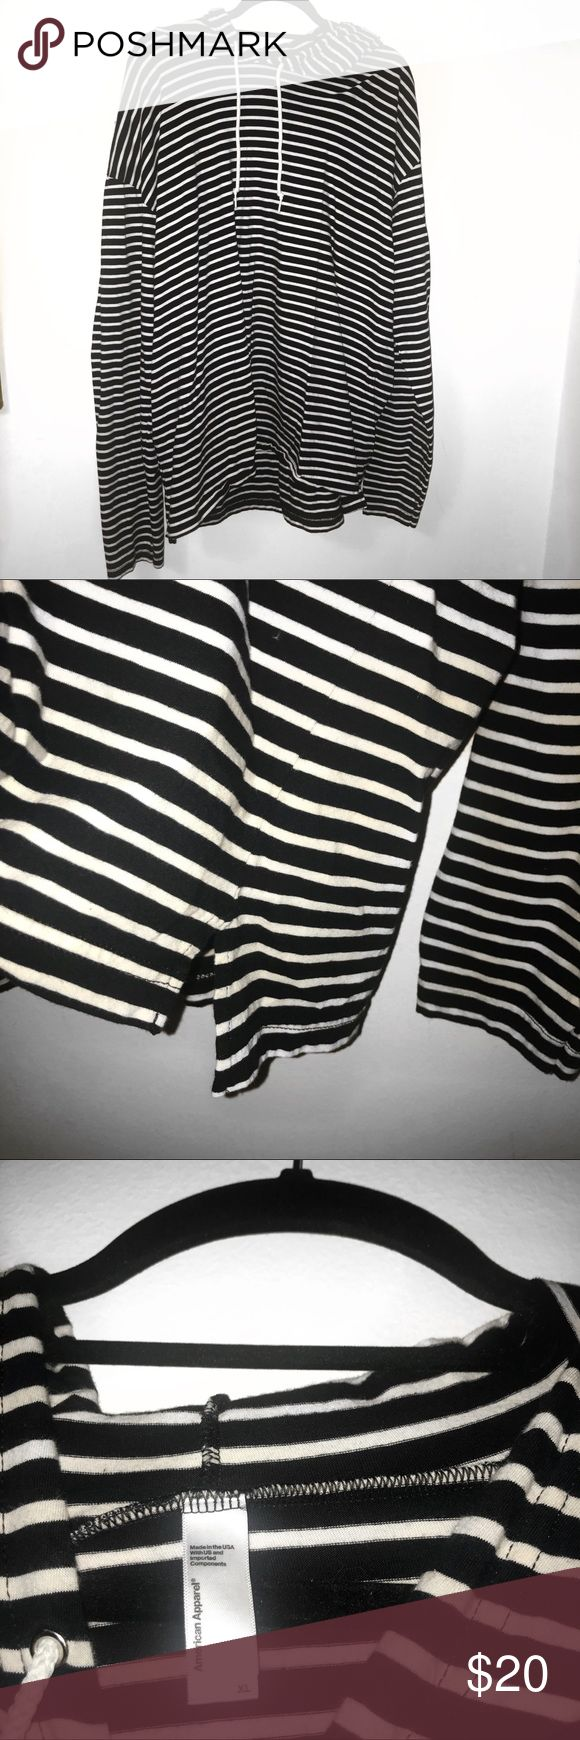 AMERICAN APPAREL Striped Hooded Long Sleeve Super comfy cotton American Apparel brand hooded long sleeve. Has small slits on the sides and a good with pulls. Cozy for winter! Ladies can wear oversized with leggings or jeans and men can wear for a comfortable winter piece. Washed and worn once, in perfect condition! American Apparel Shirts Sweatshirts & Hoodies